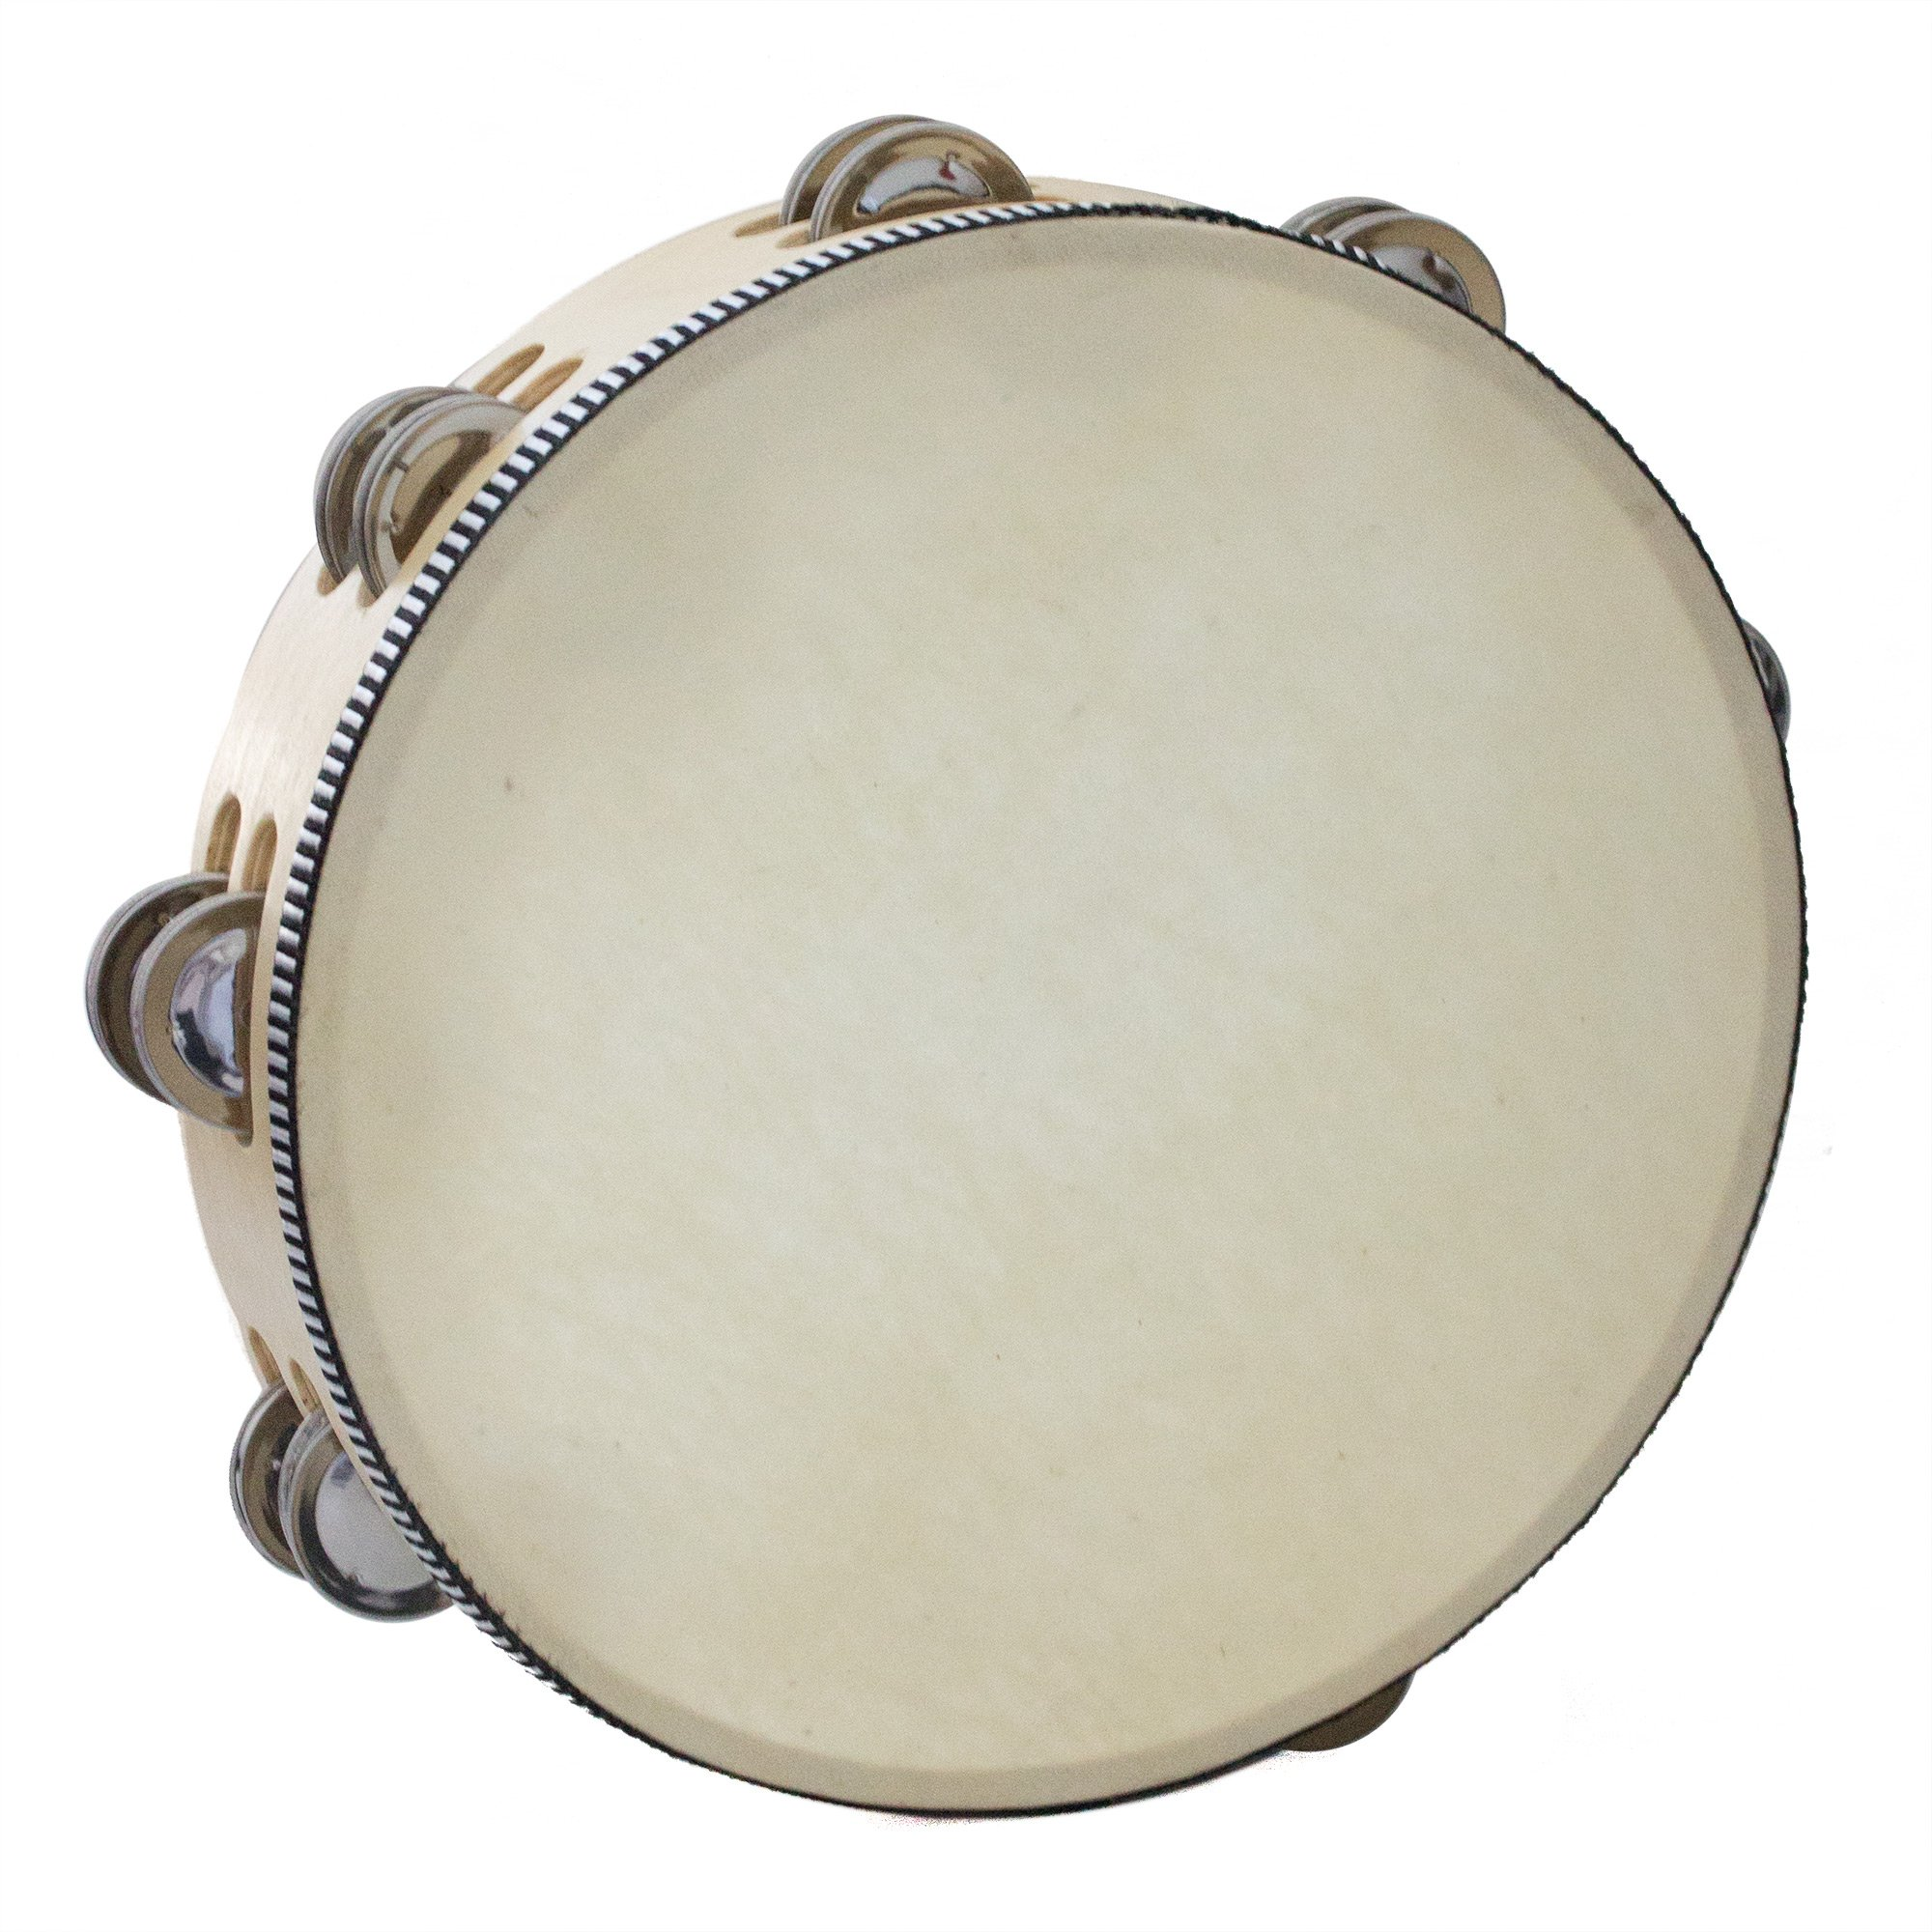 Kalos by Cecilio KP_TMW10-2C 10-Inch Wooden Tambourine with 16 Pairs of Jingles by Cecilio